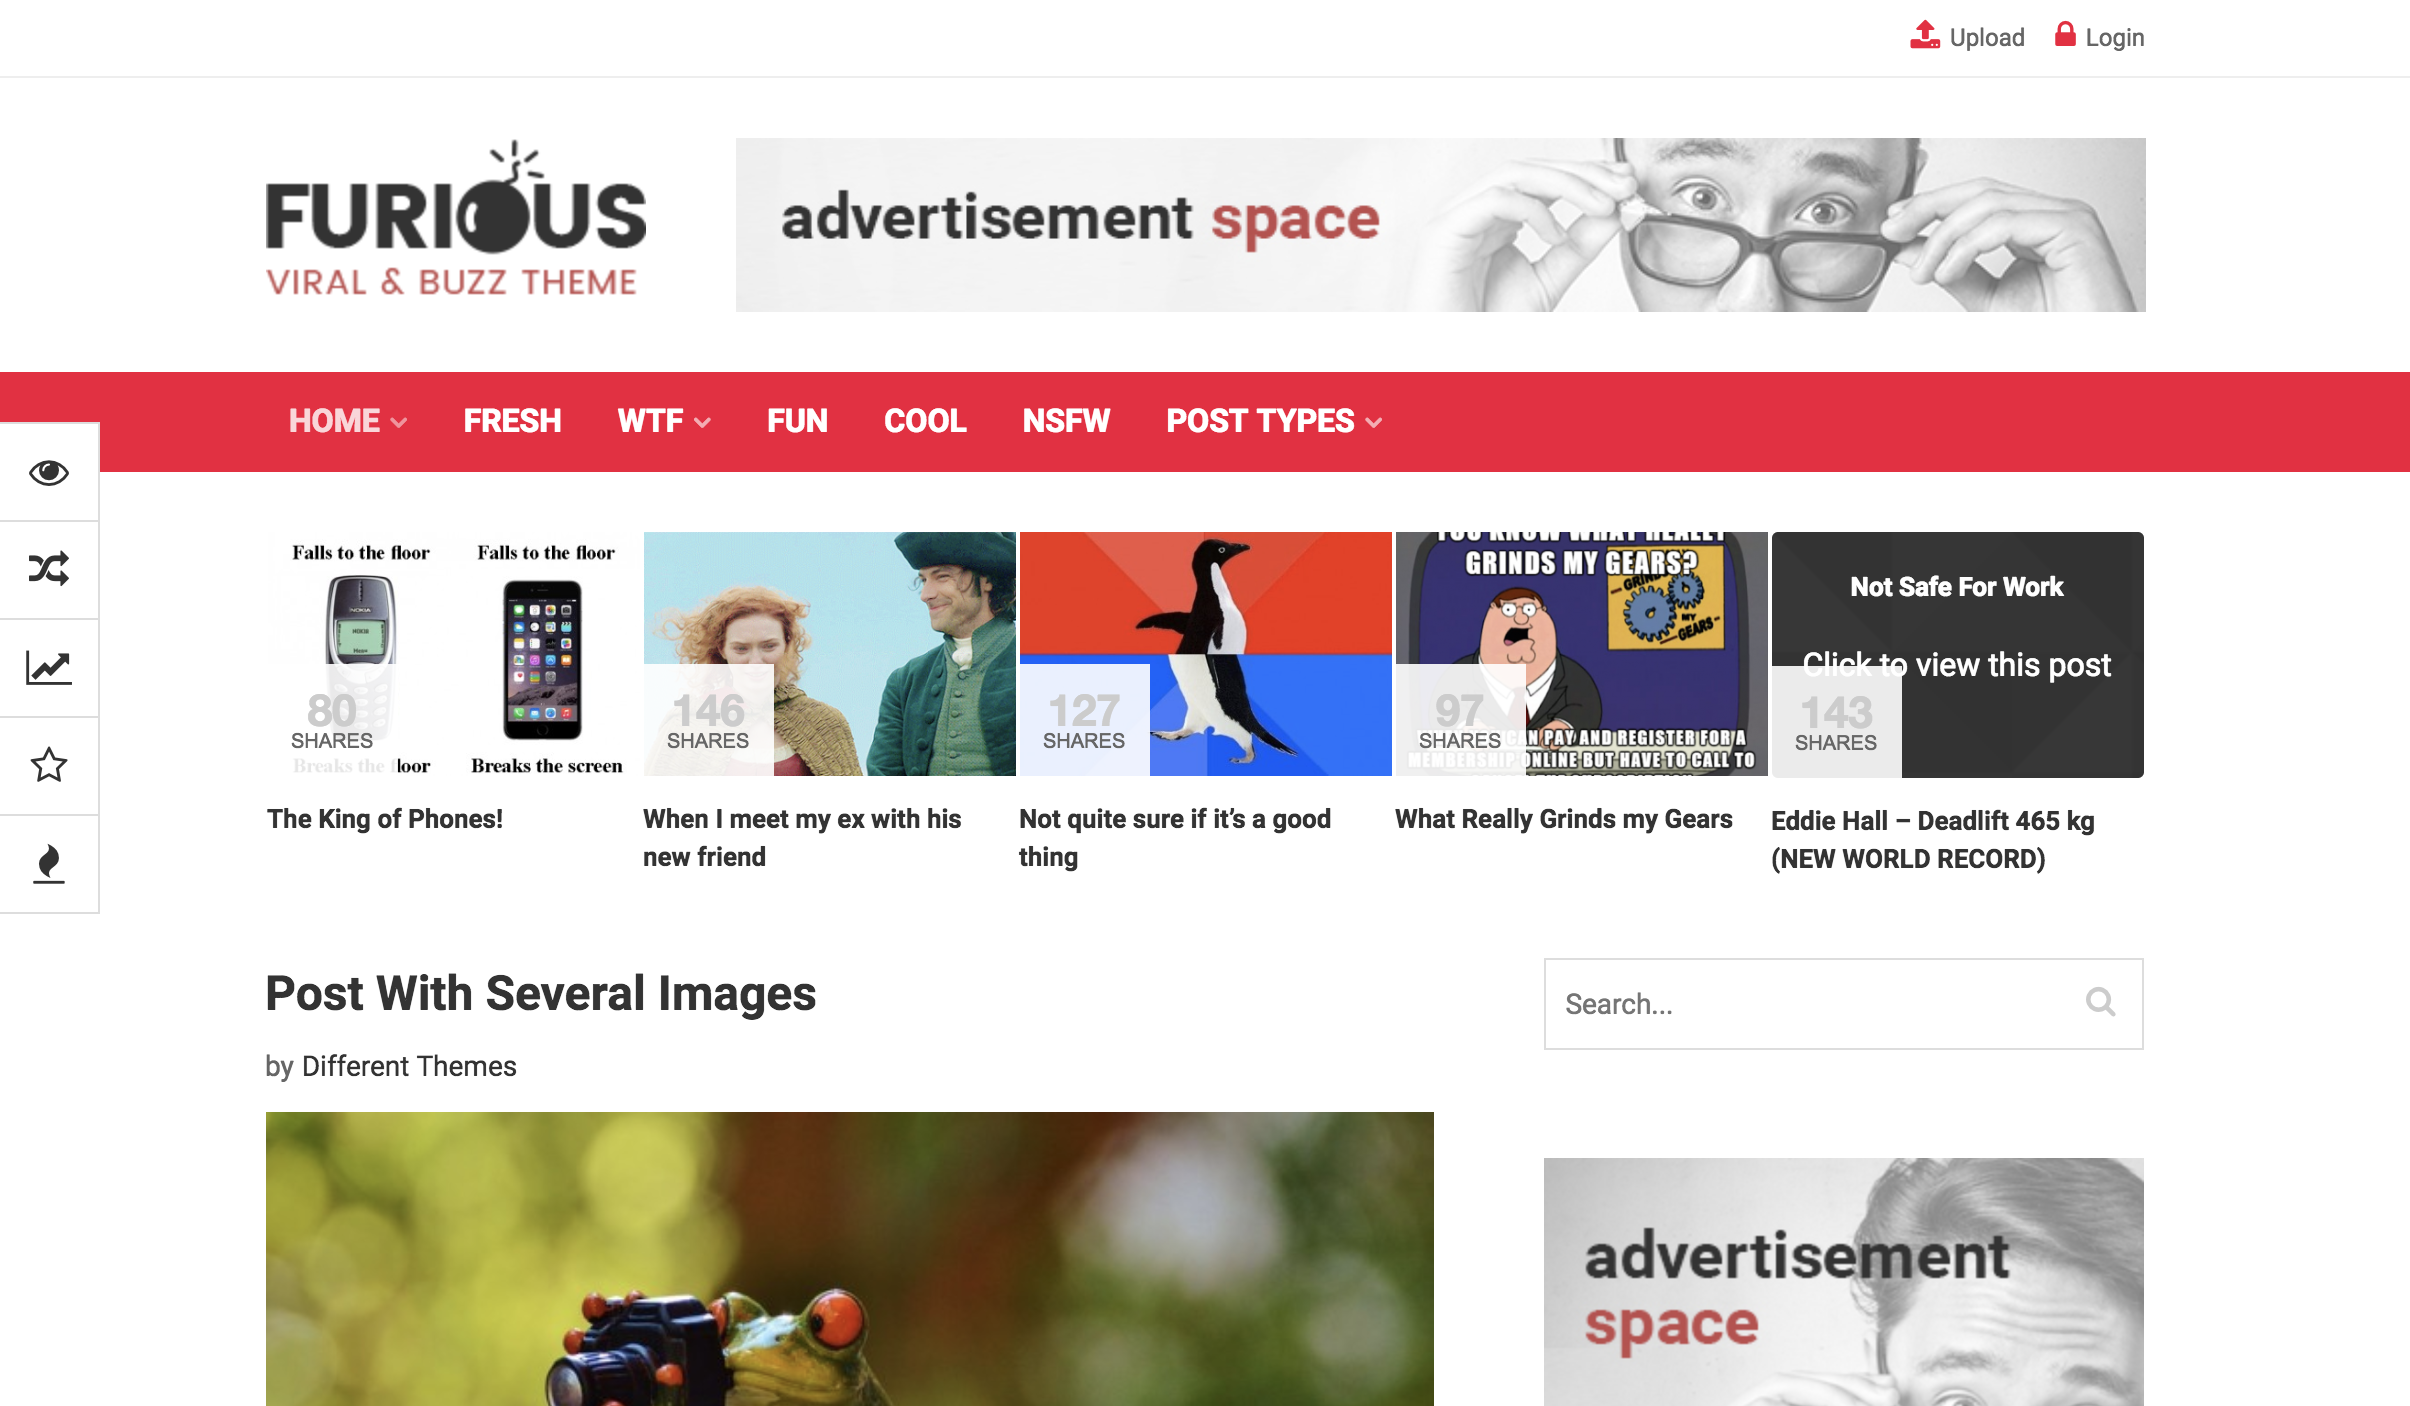 Furious - Viral & Buzz WordPress Theme